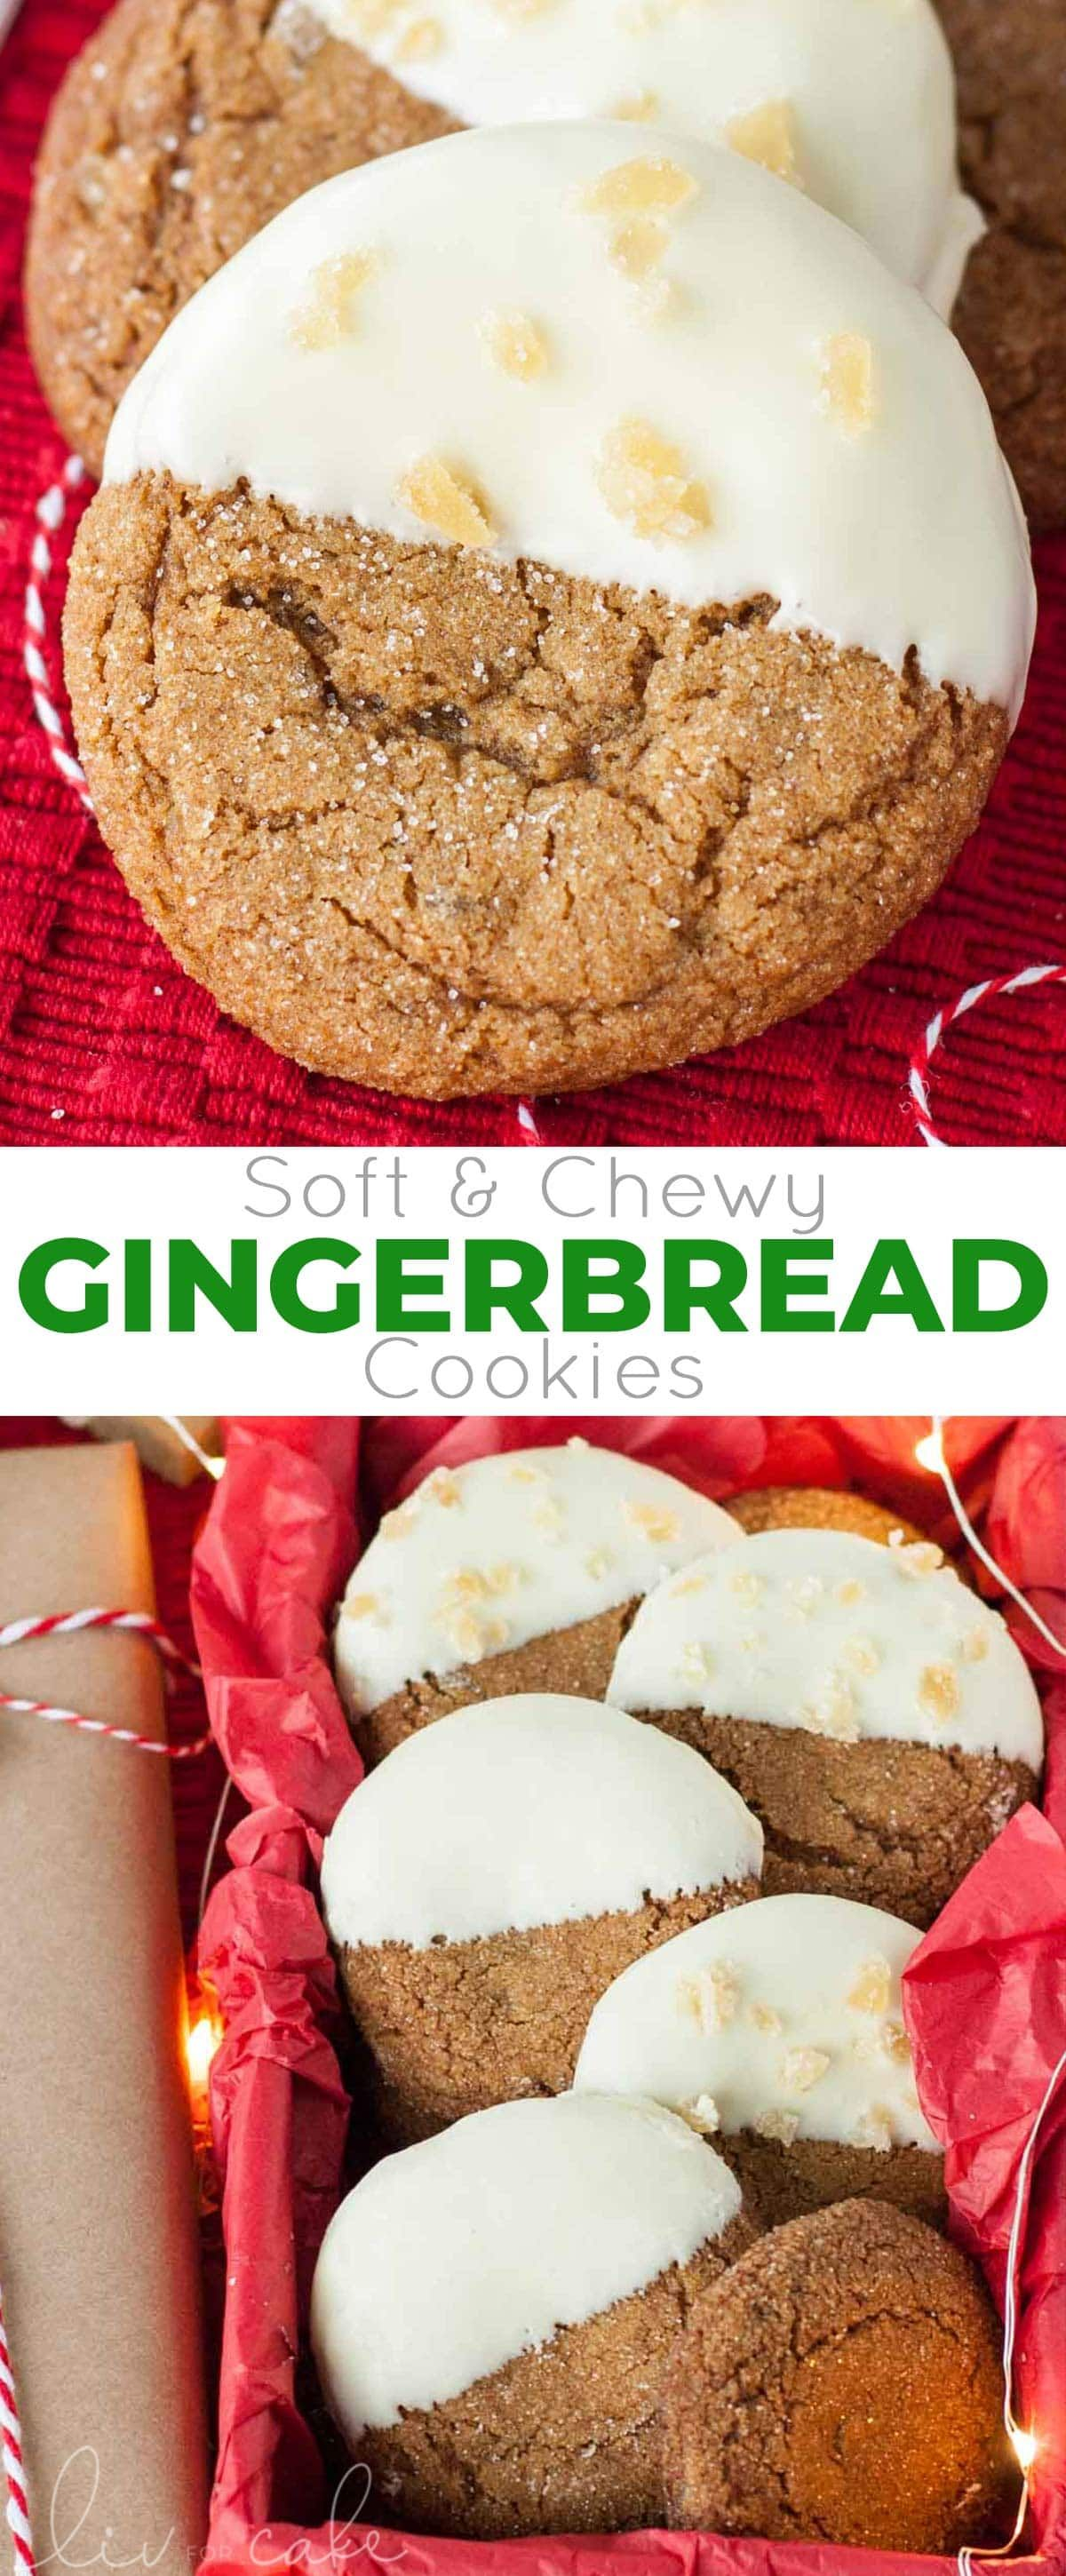 Snow Capped Gingersnaps (Chewy Gingerbread Cookies) | Liv for Cake